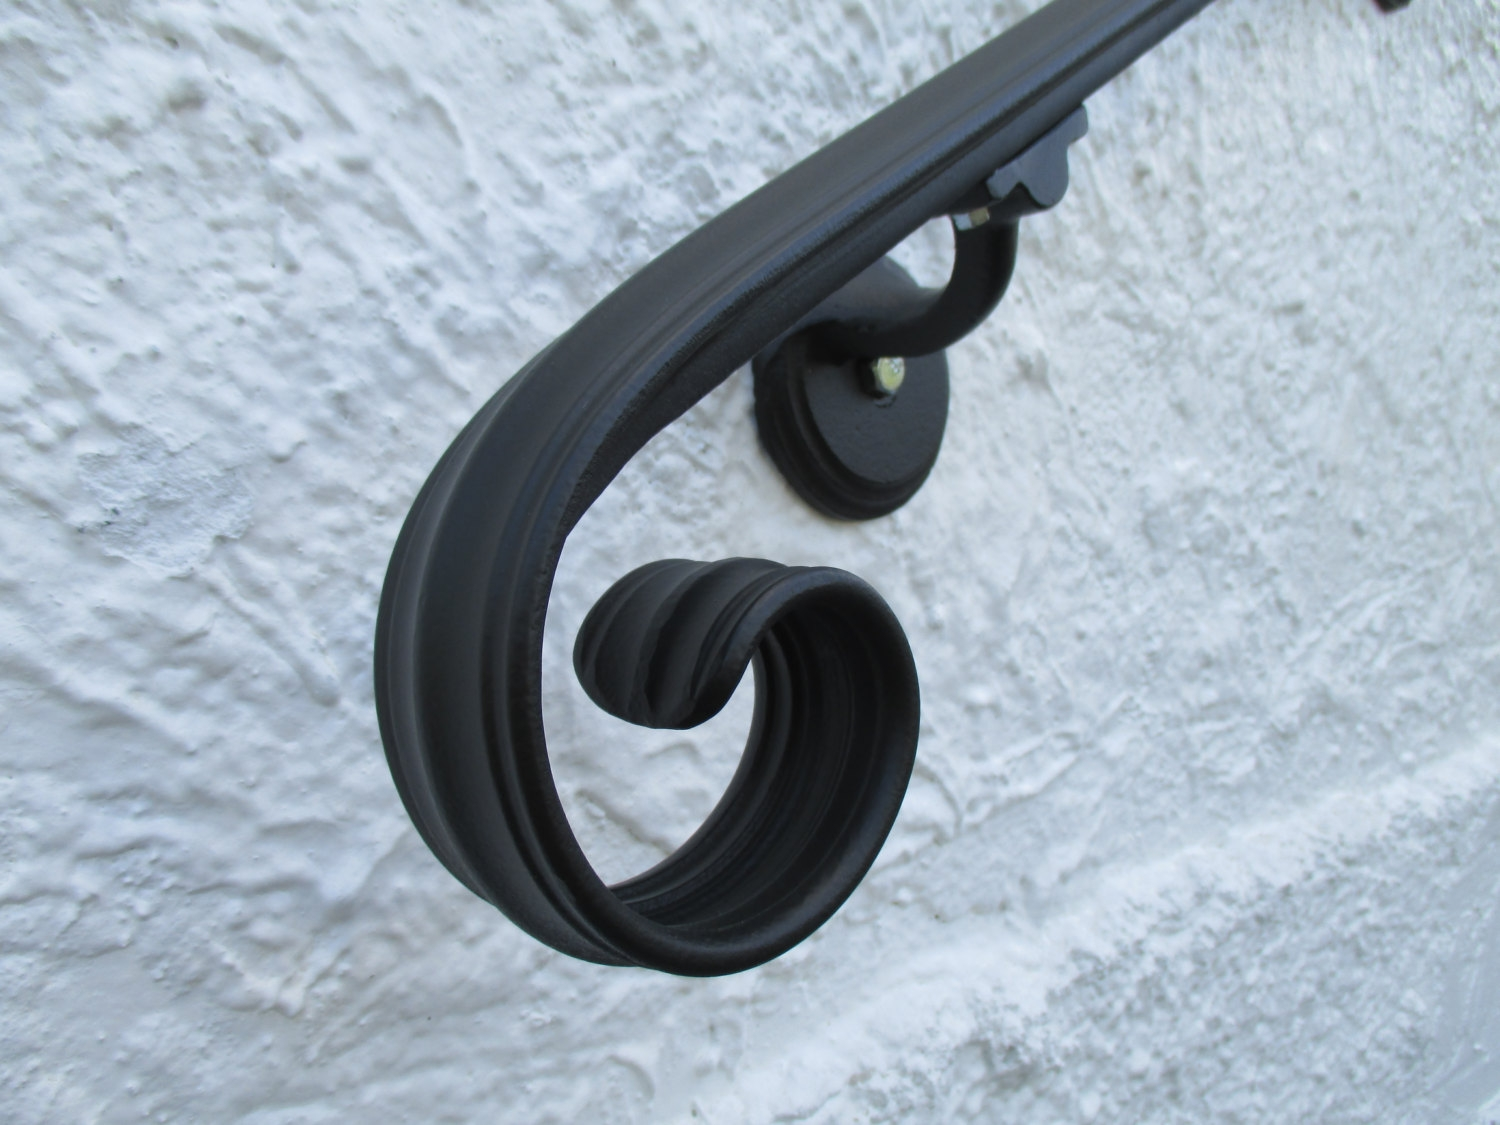 14 Ft Wrought Iron Wall Mount Hand Rail Elegant Scroll Design   Wall Mounted Handrail For Stairs   Stair Interior   Brushed Nickel   Thin Glass   Attached Wall   Mounting